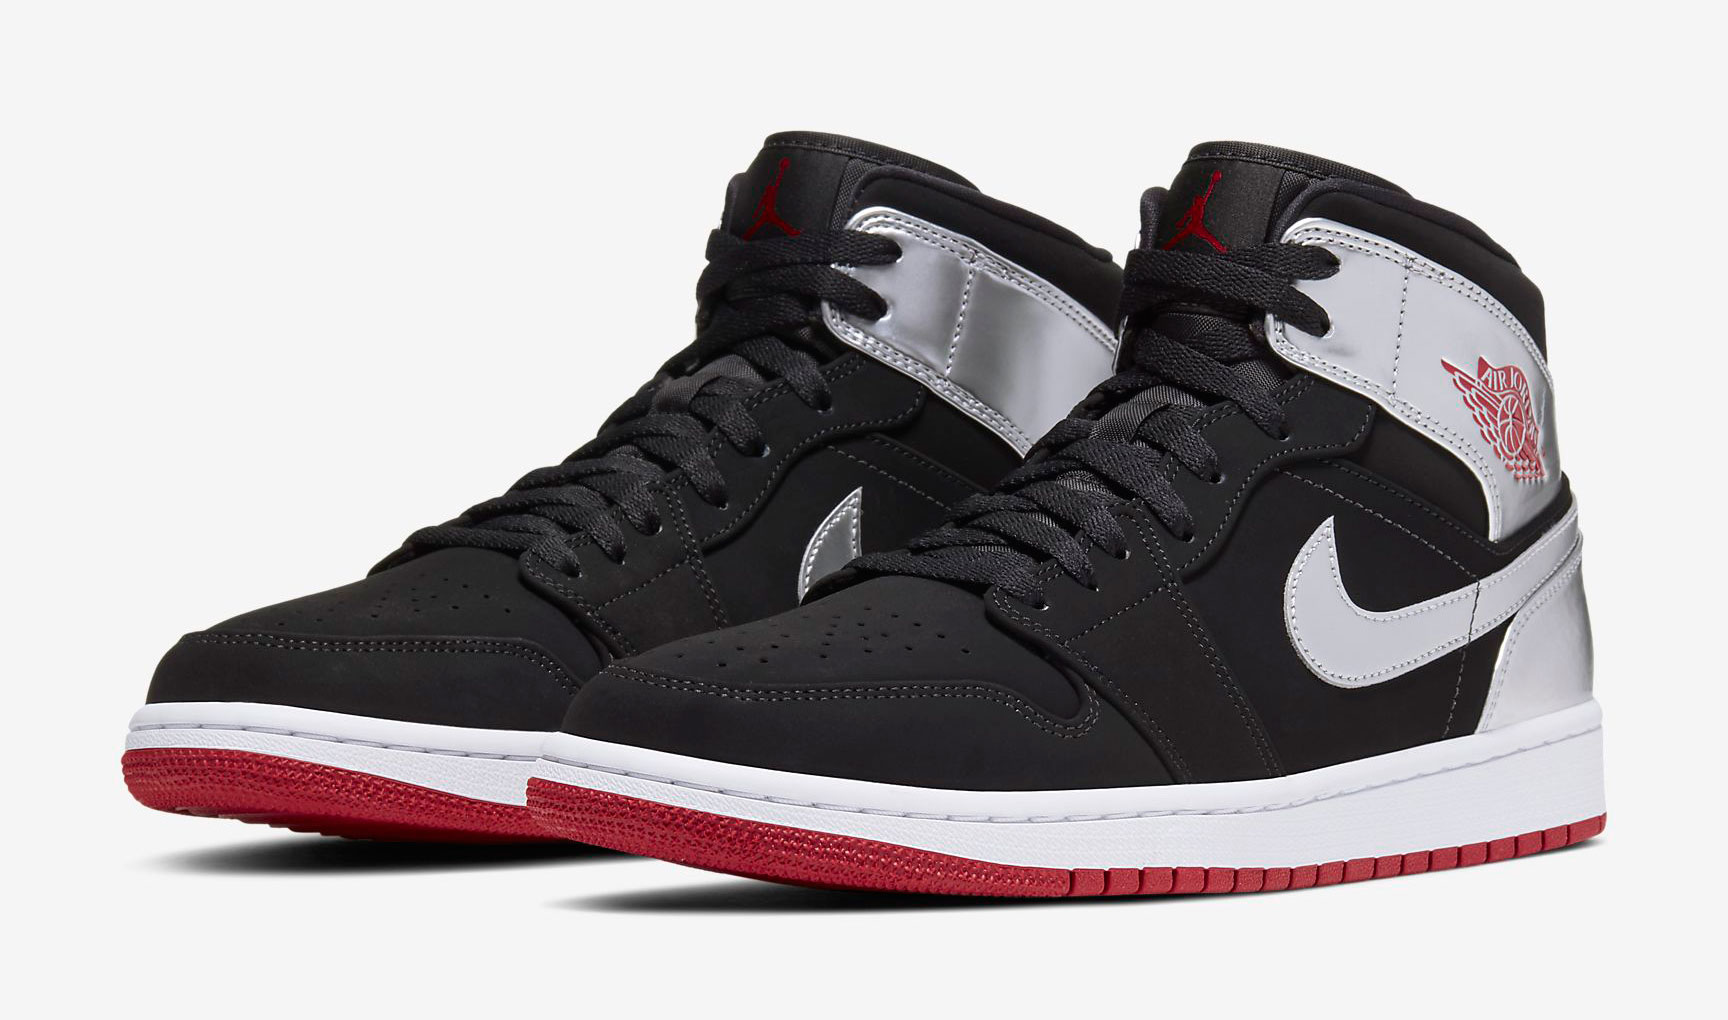 Air Jordan 1 Mid Black Silver Gym Red Available Now ...Jordan 9 Black And Red And Silver